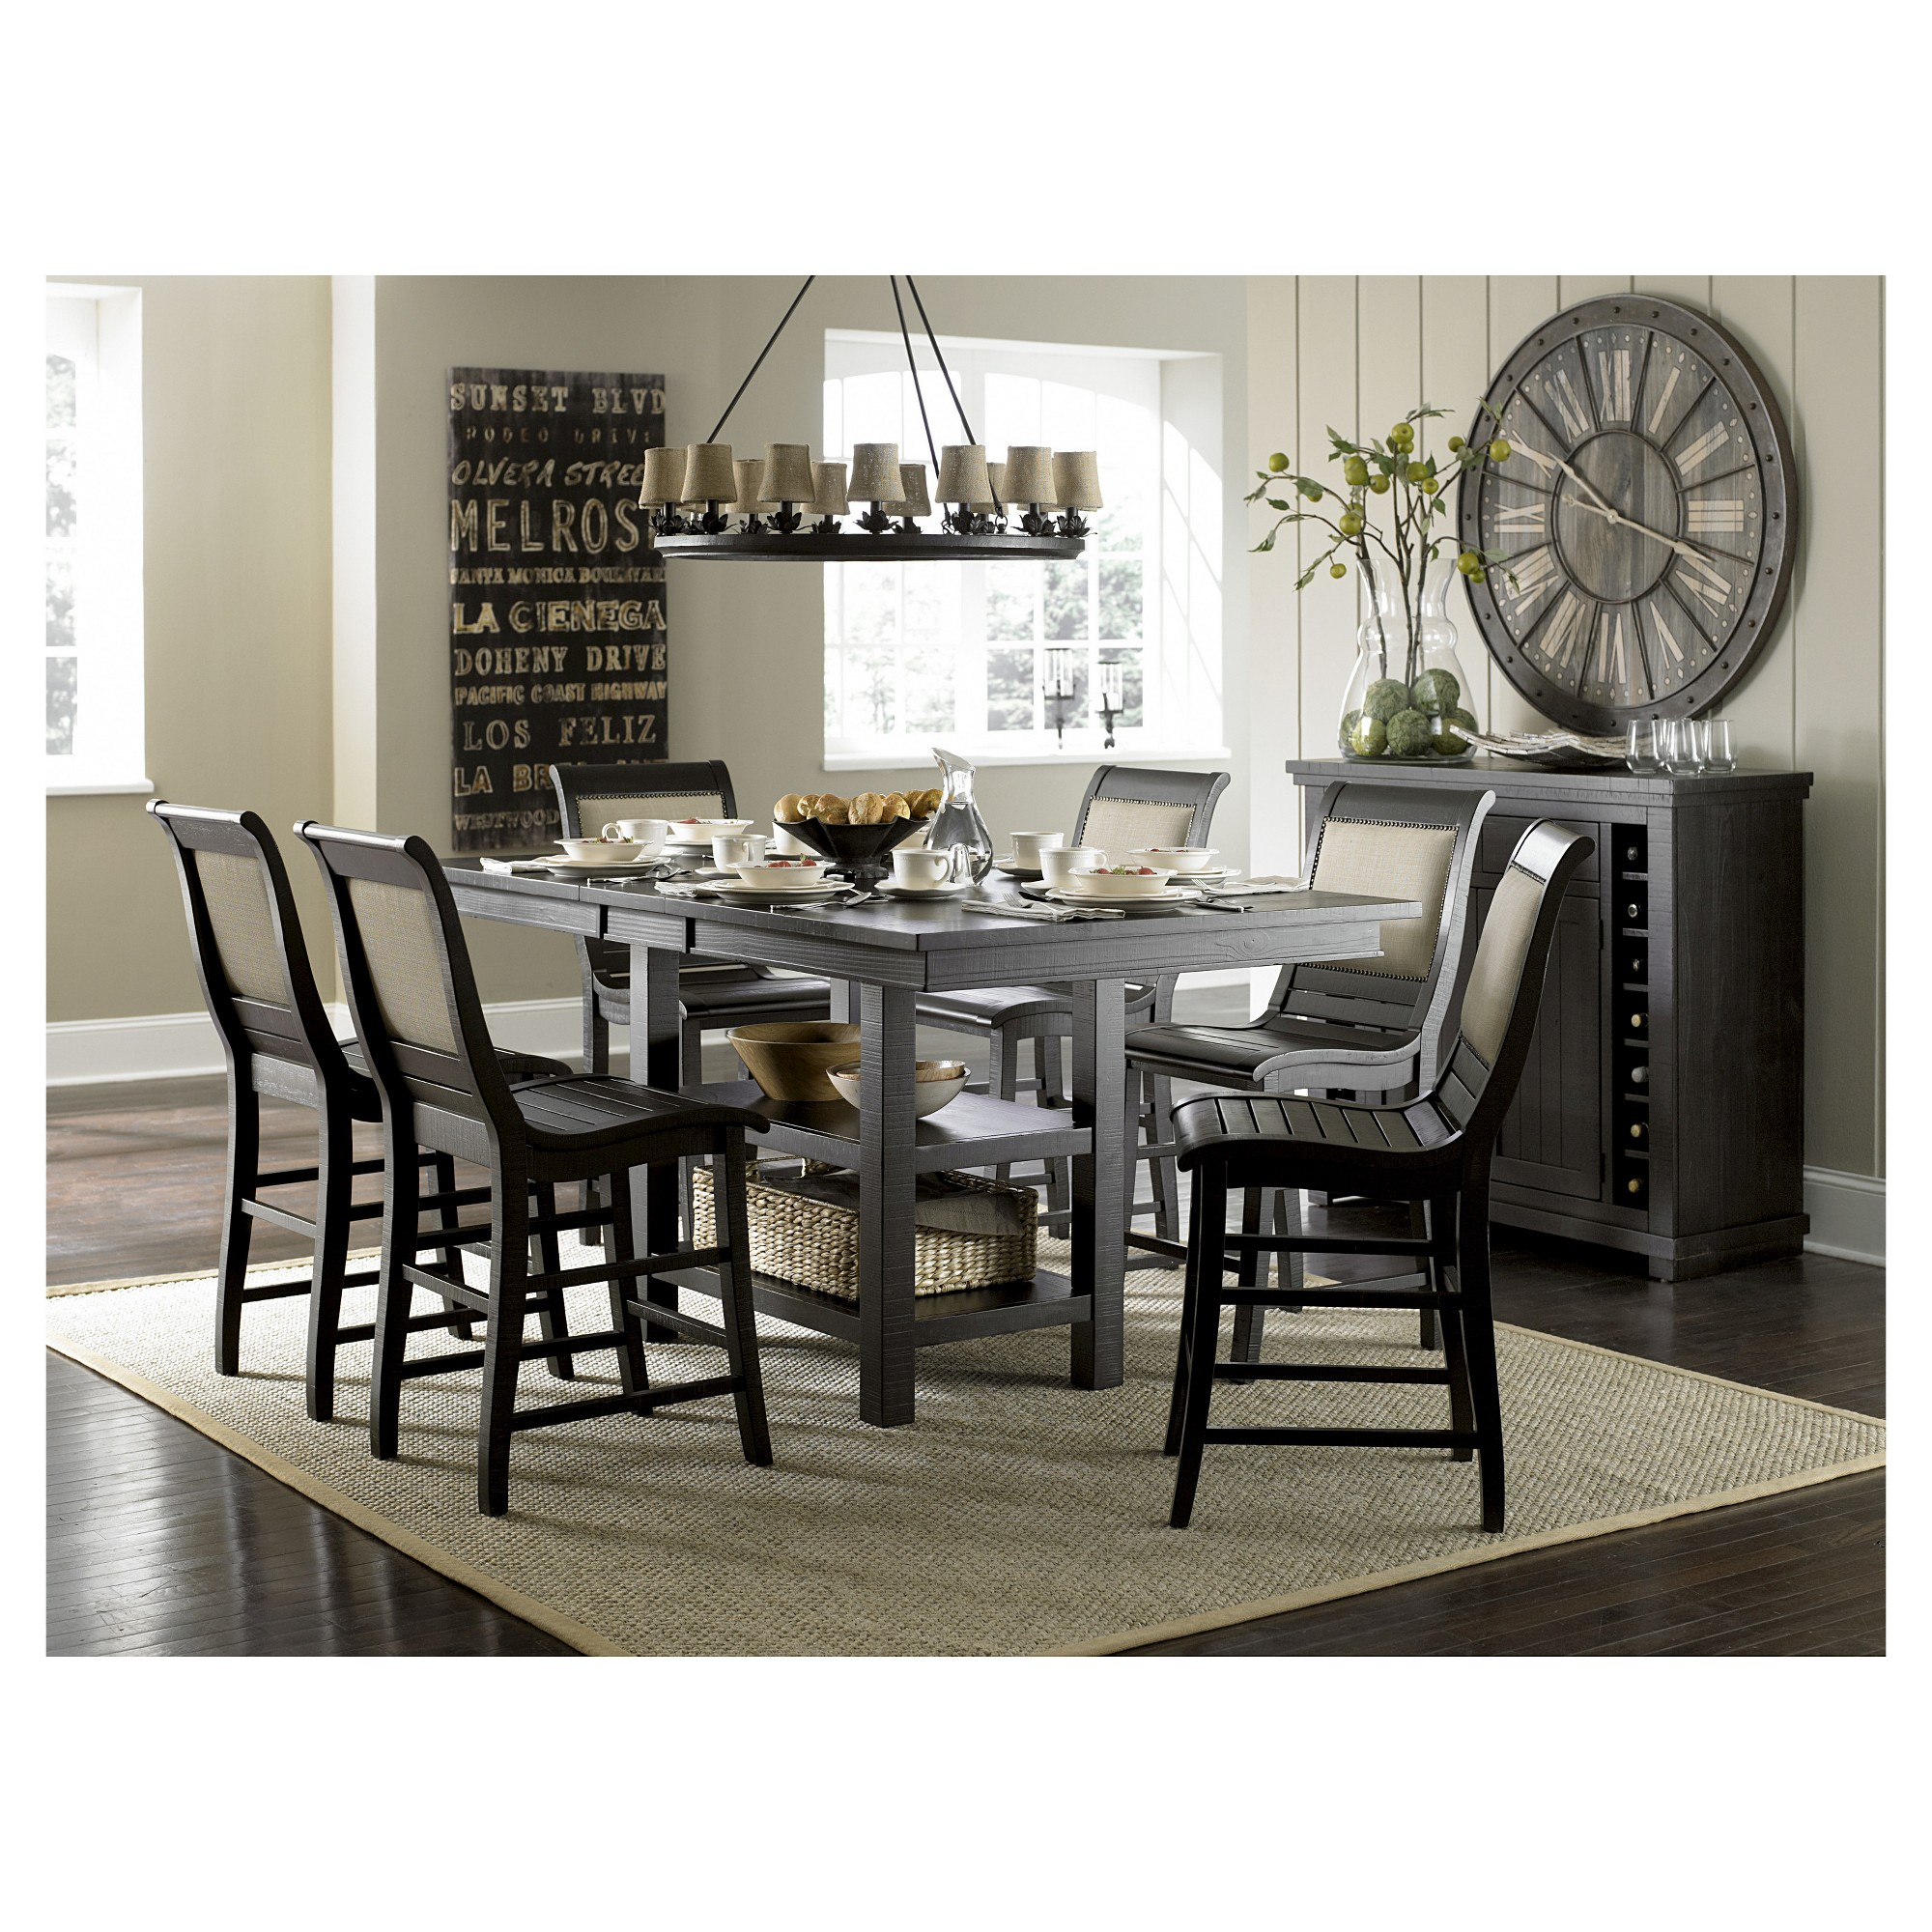 Willow rectangular counter height dining table distressed black